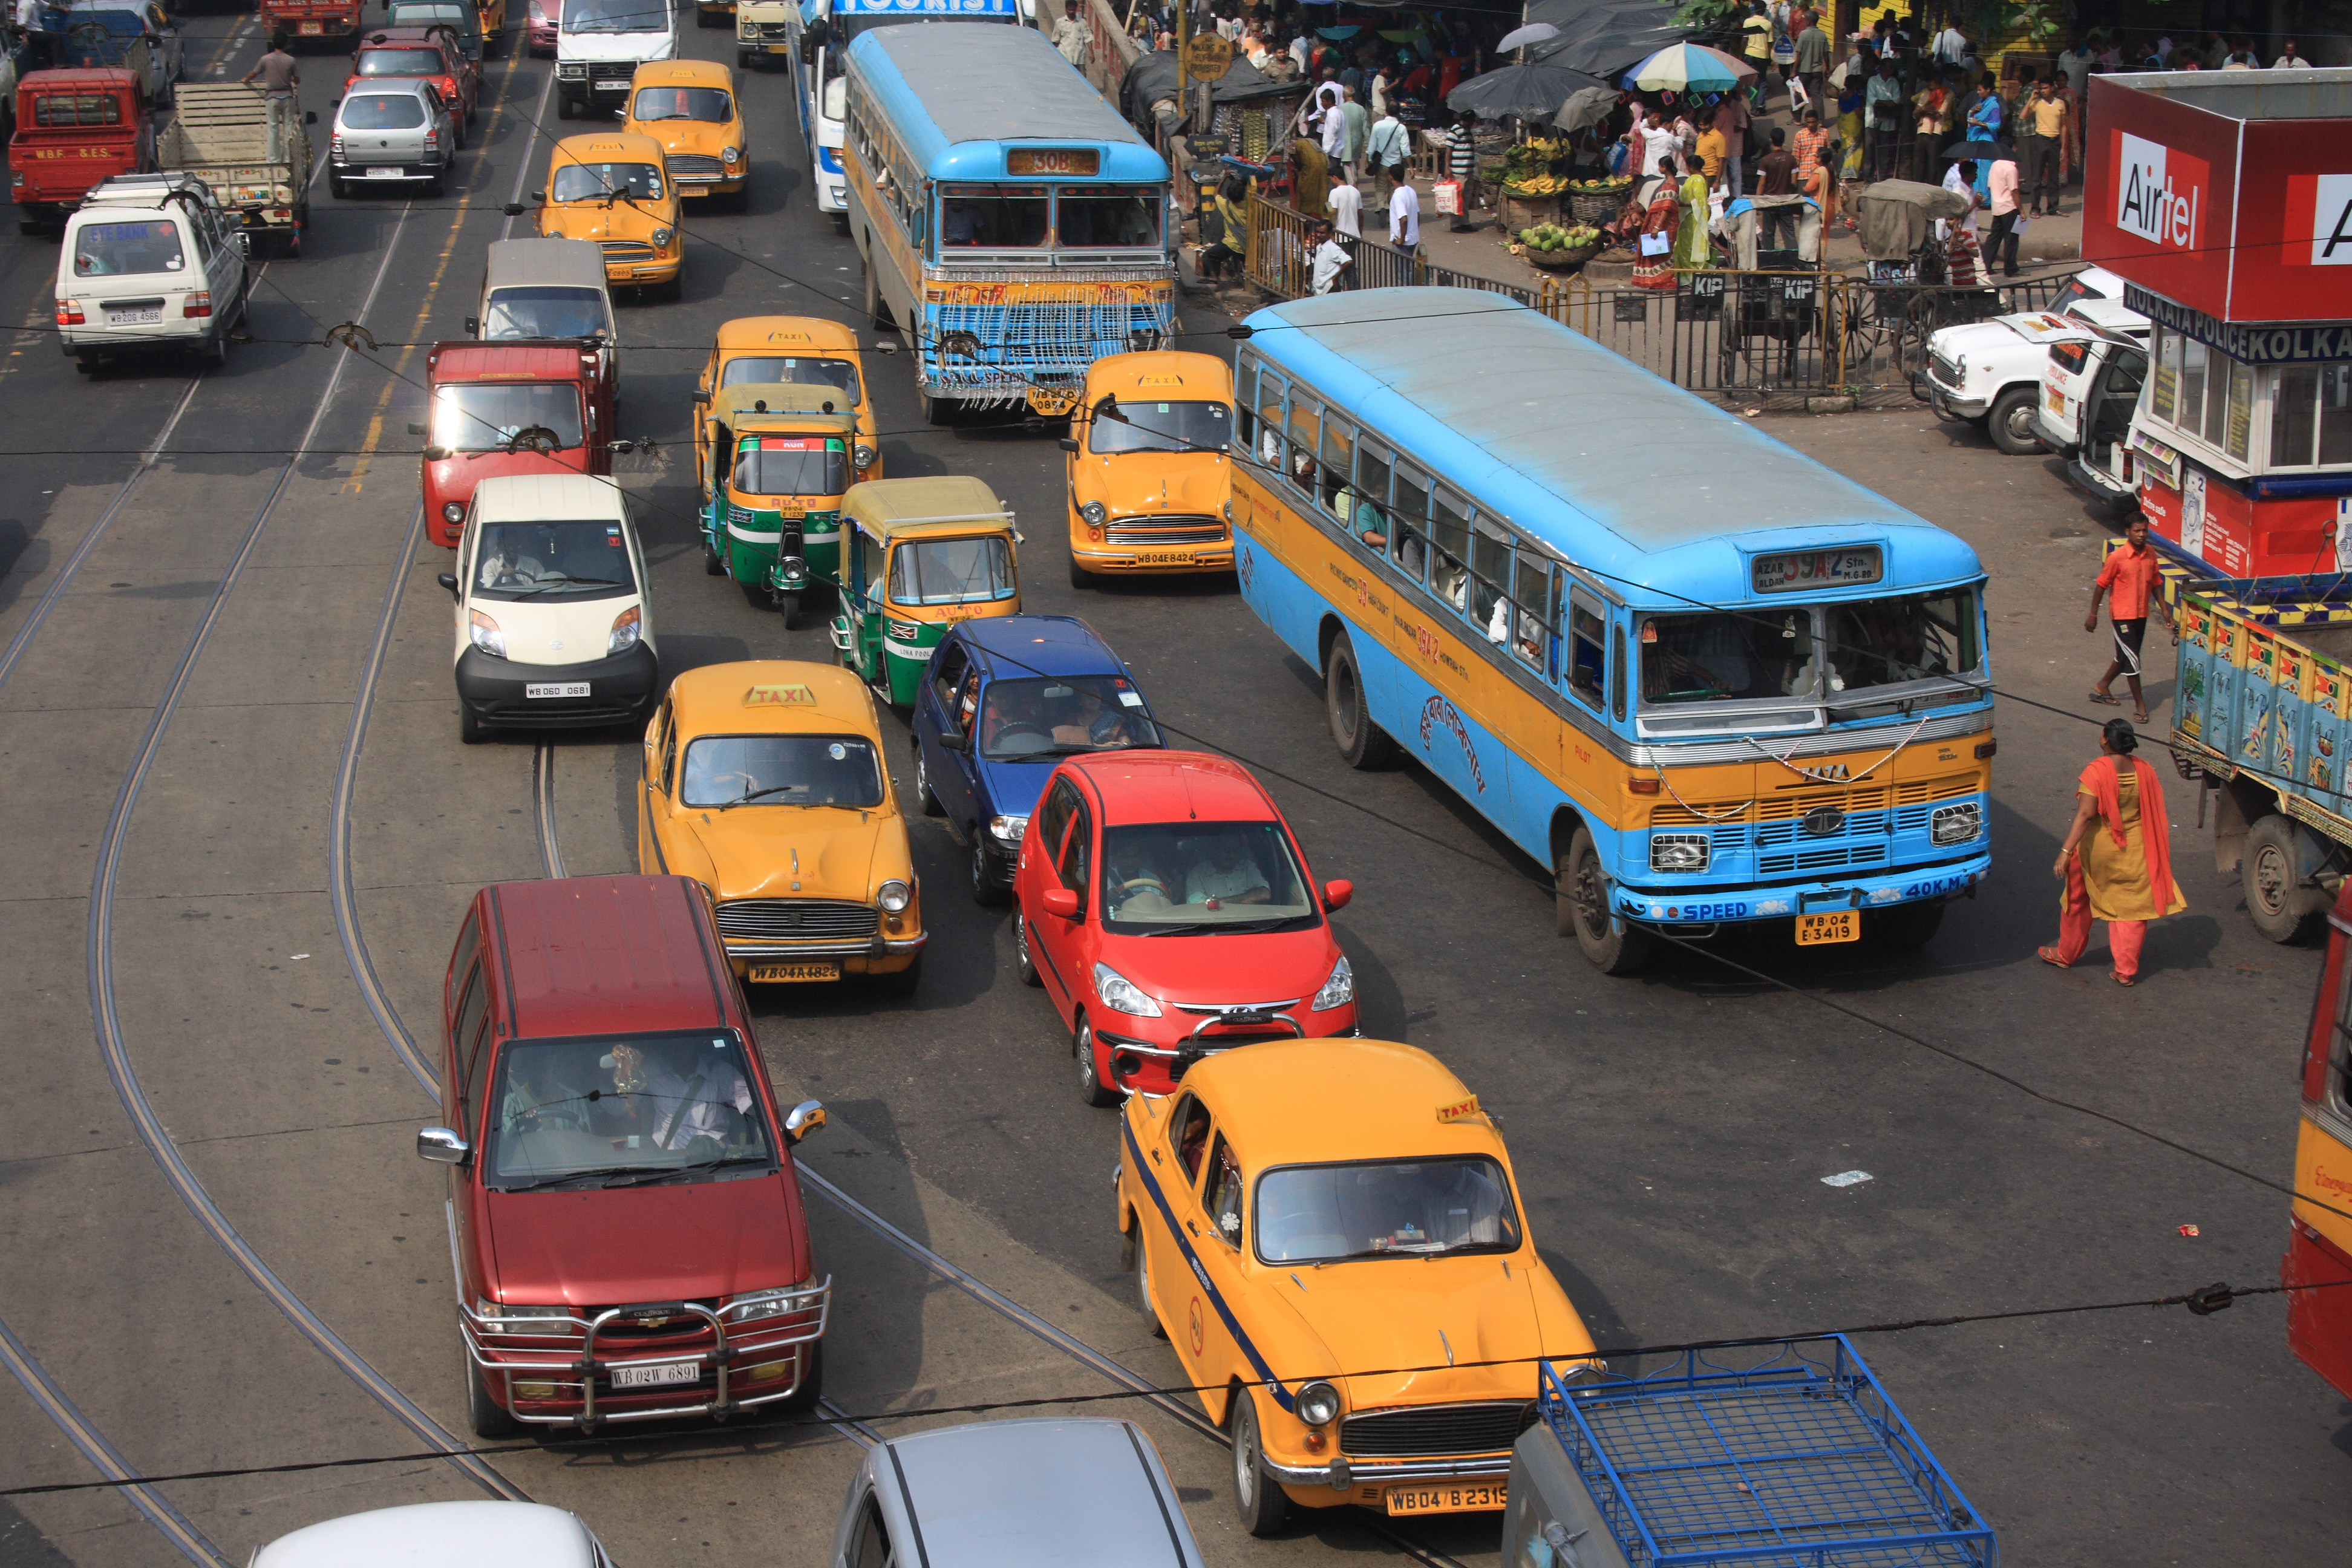 A congested road showing buses, taxis, autorikshaws and other modes of road transport